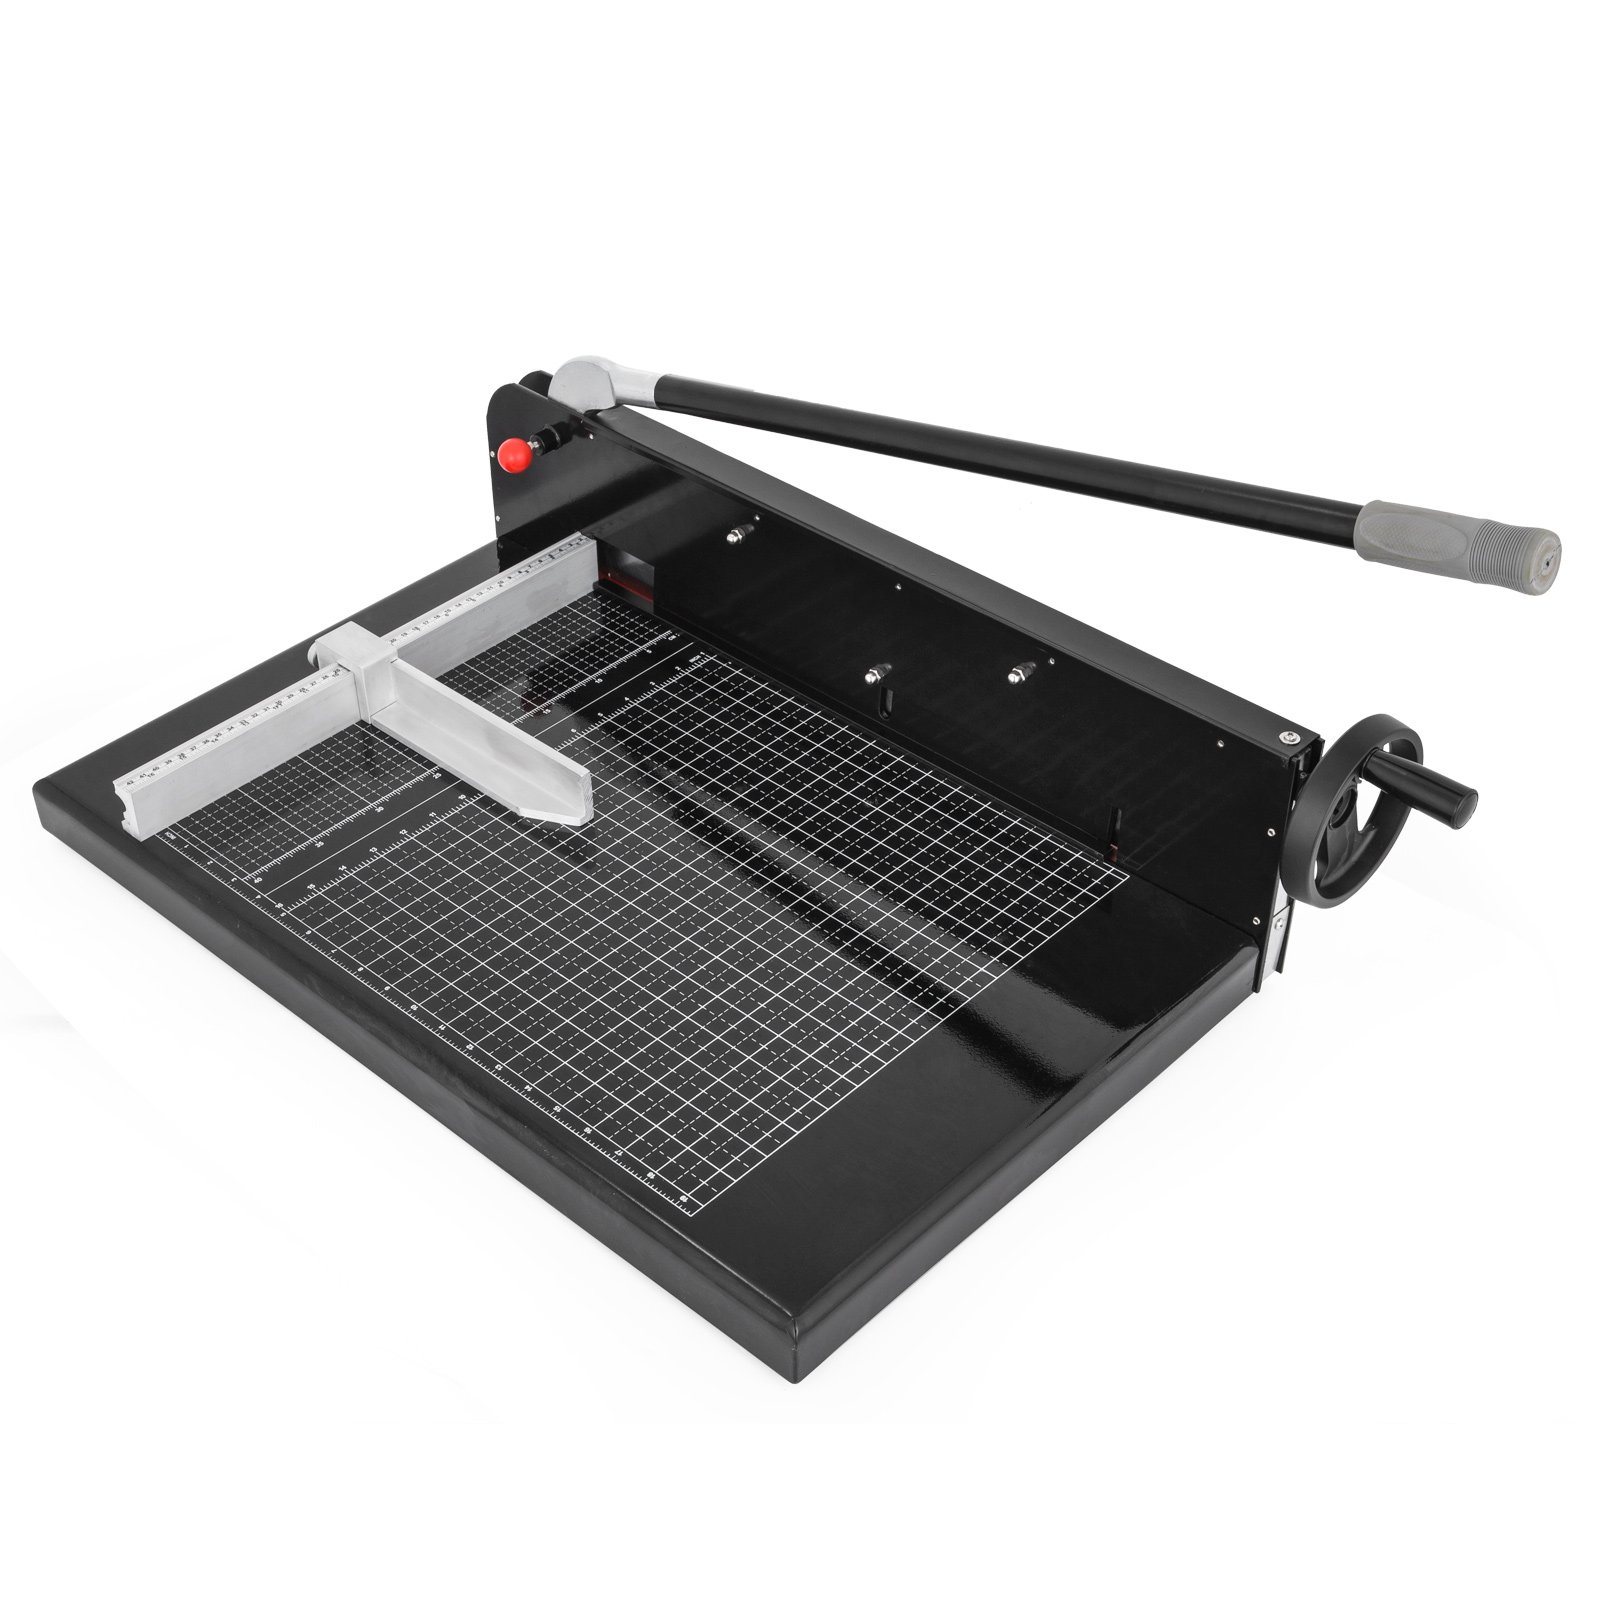 Mophorn Paper Cutter 19Inch A2 Commercial Heavy Duty Guillotine Trimmer 300 Sheets 45HRC Hardness Paper Trimmer Metal Base Desktop Stack Cutter for Home Office (A2, 19Inch)